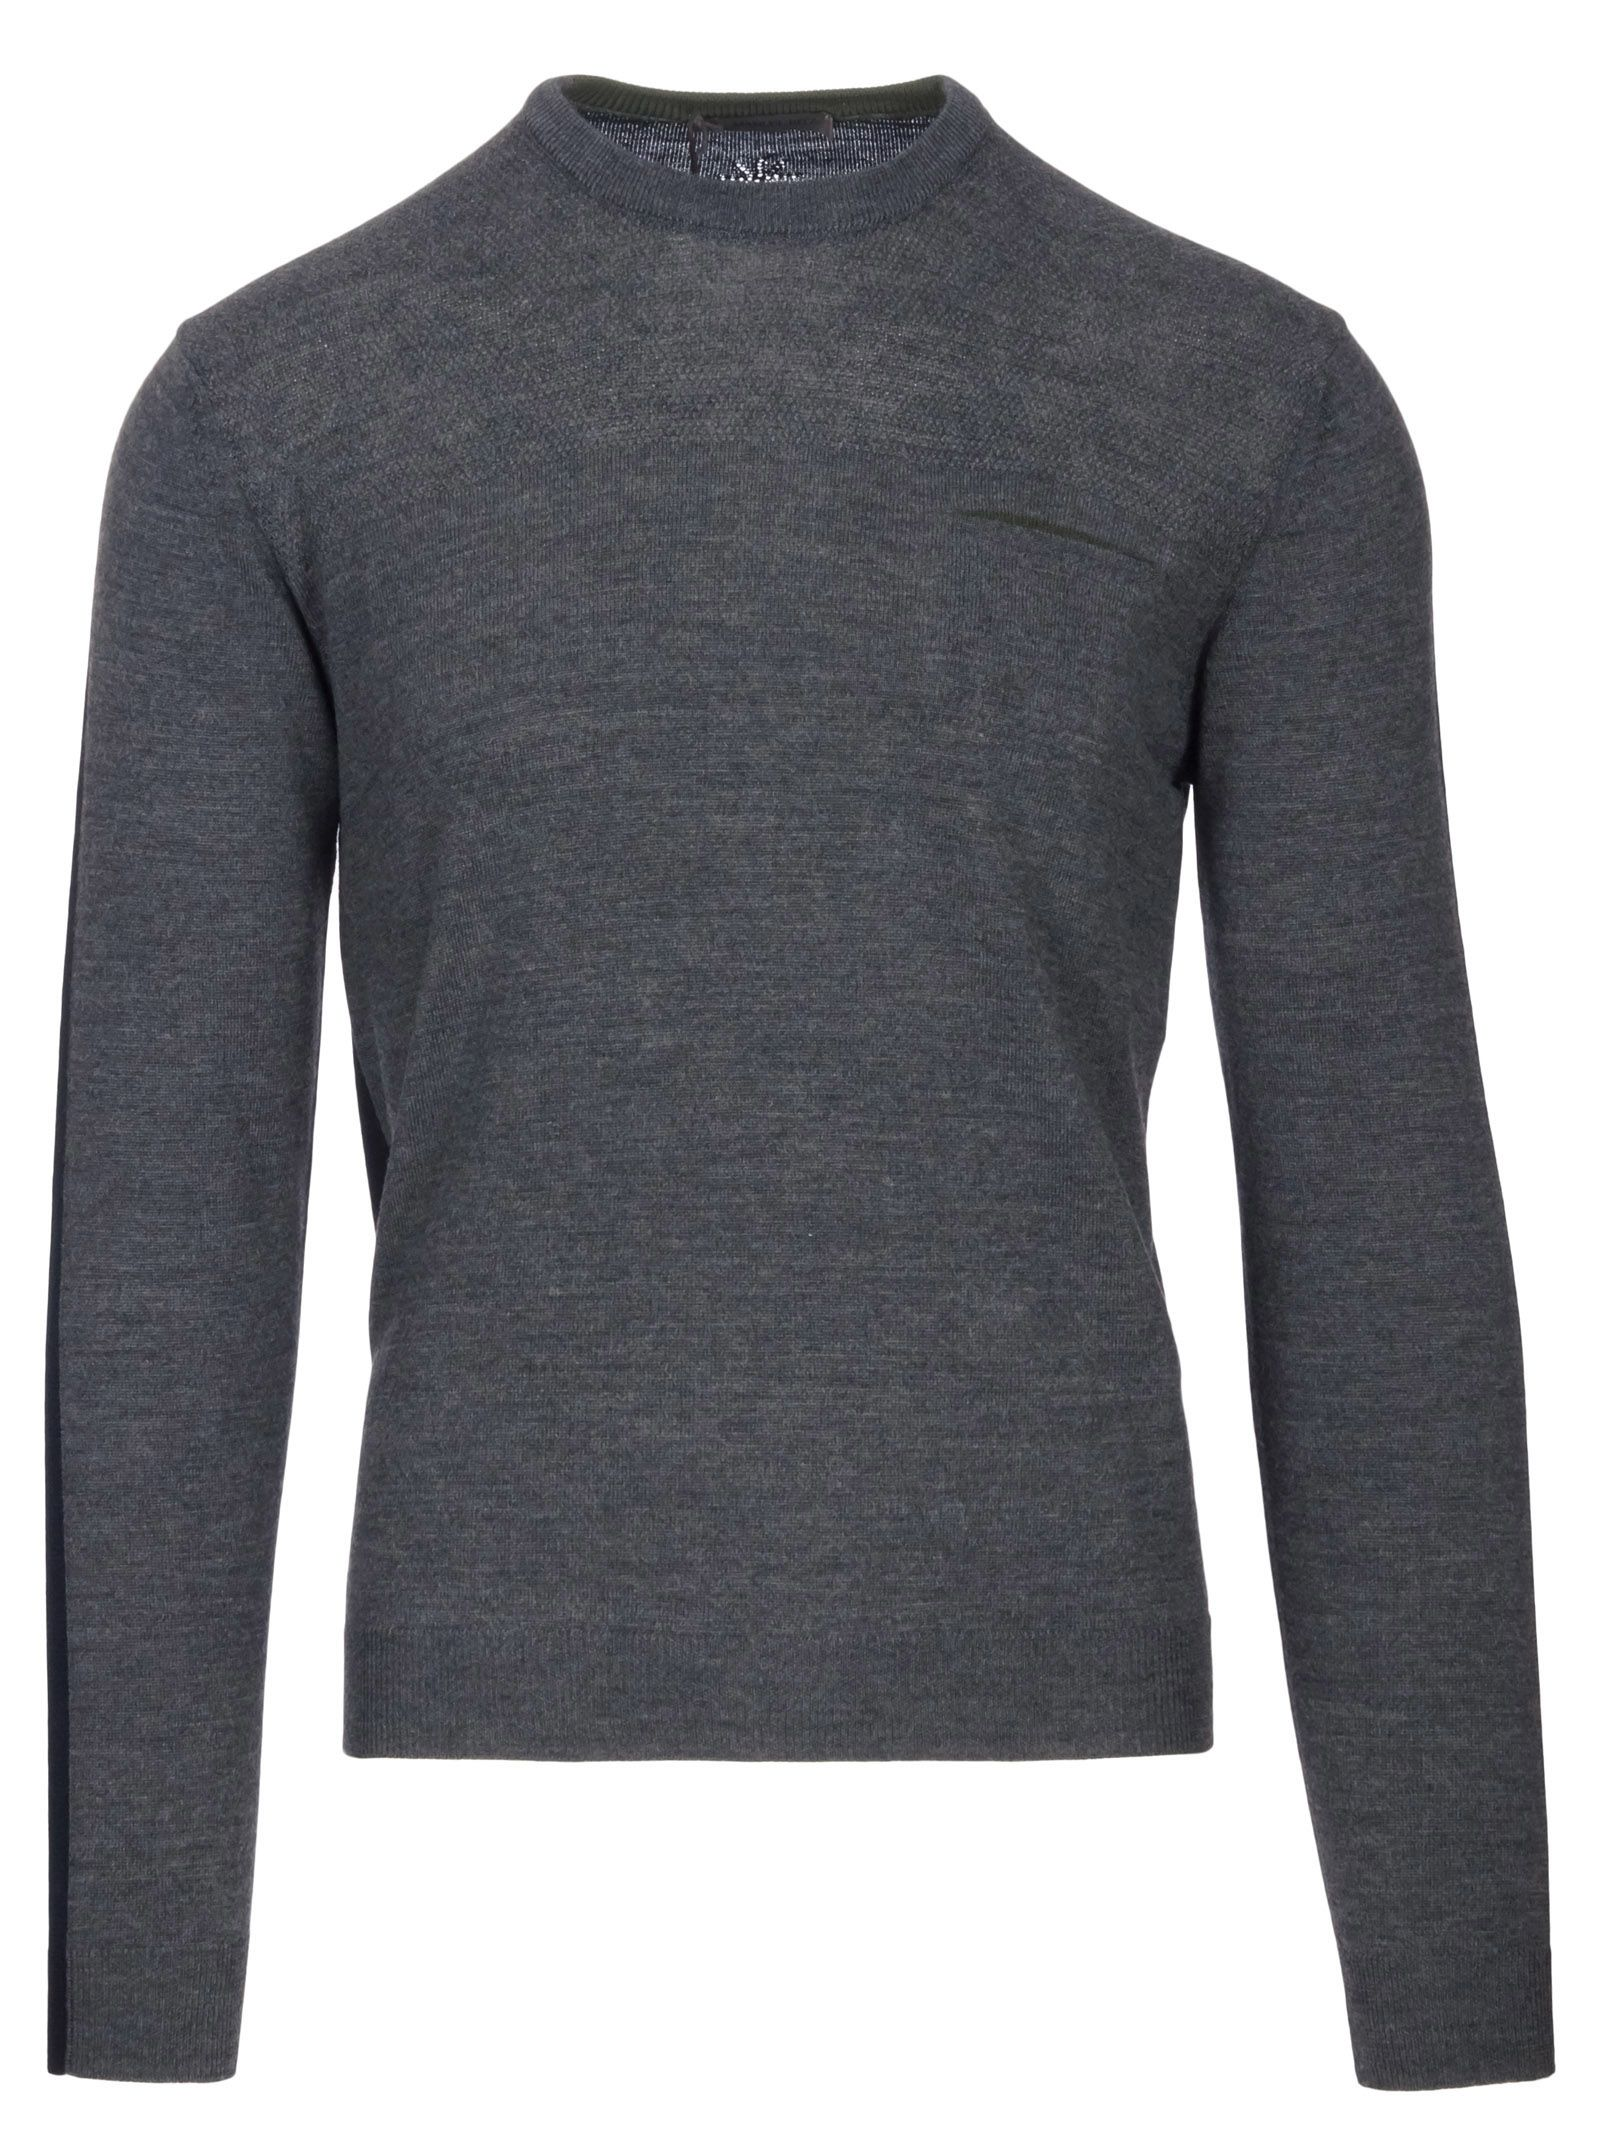 Manuel Ritz Wool Sweater